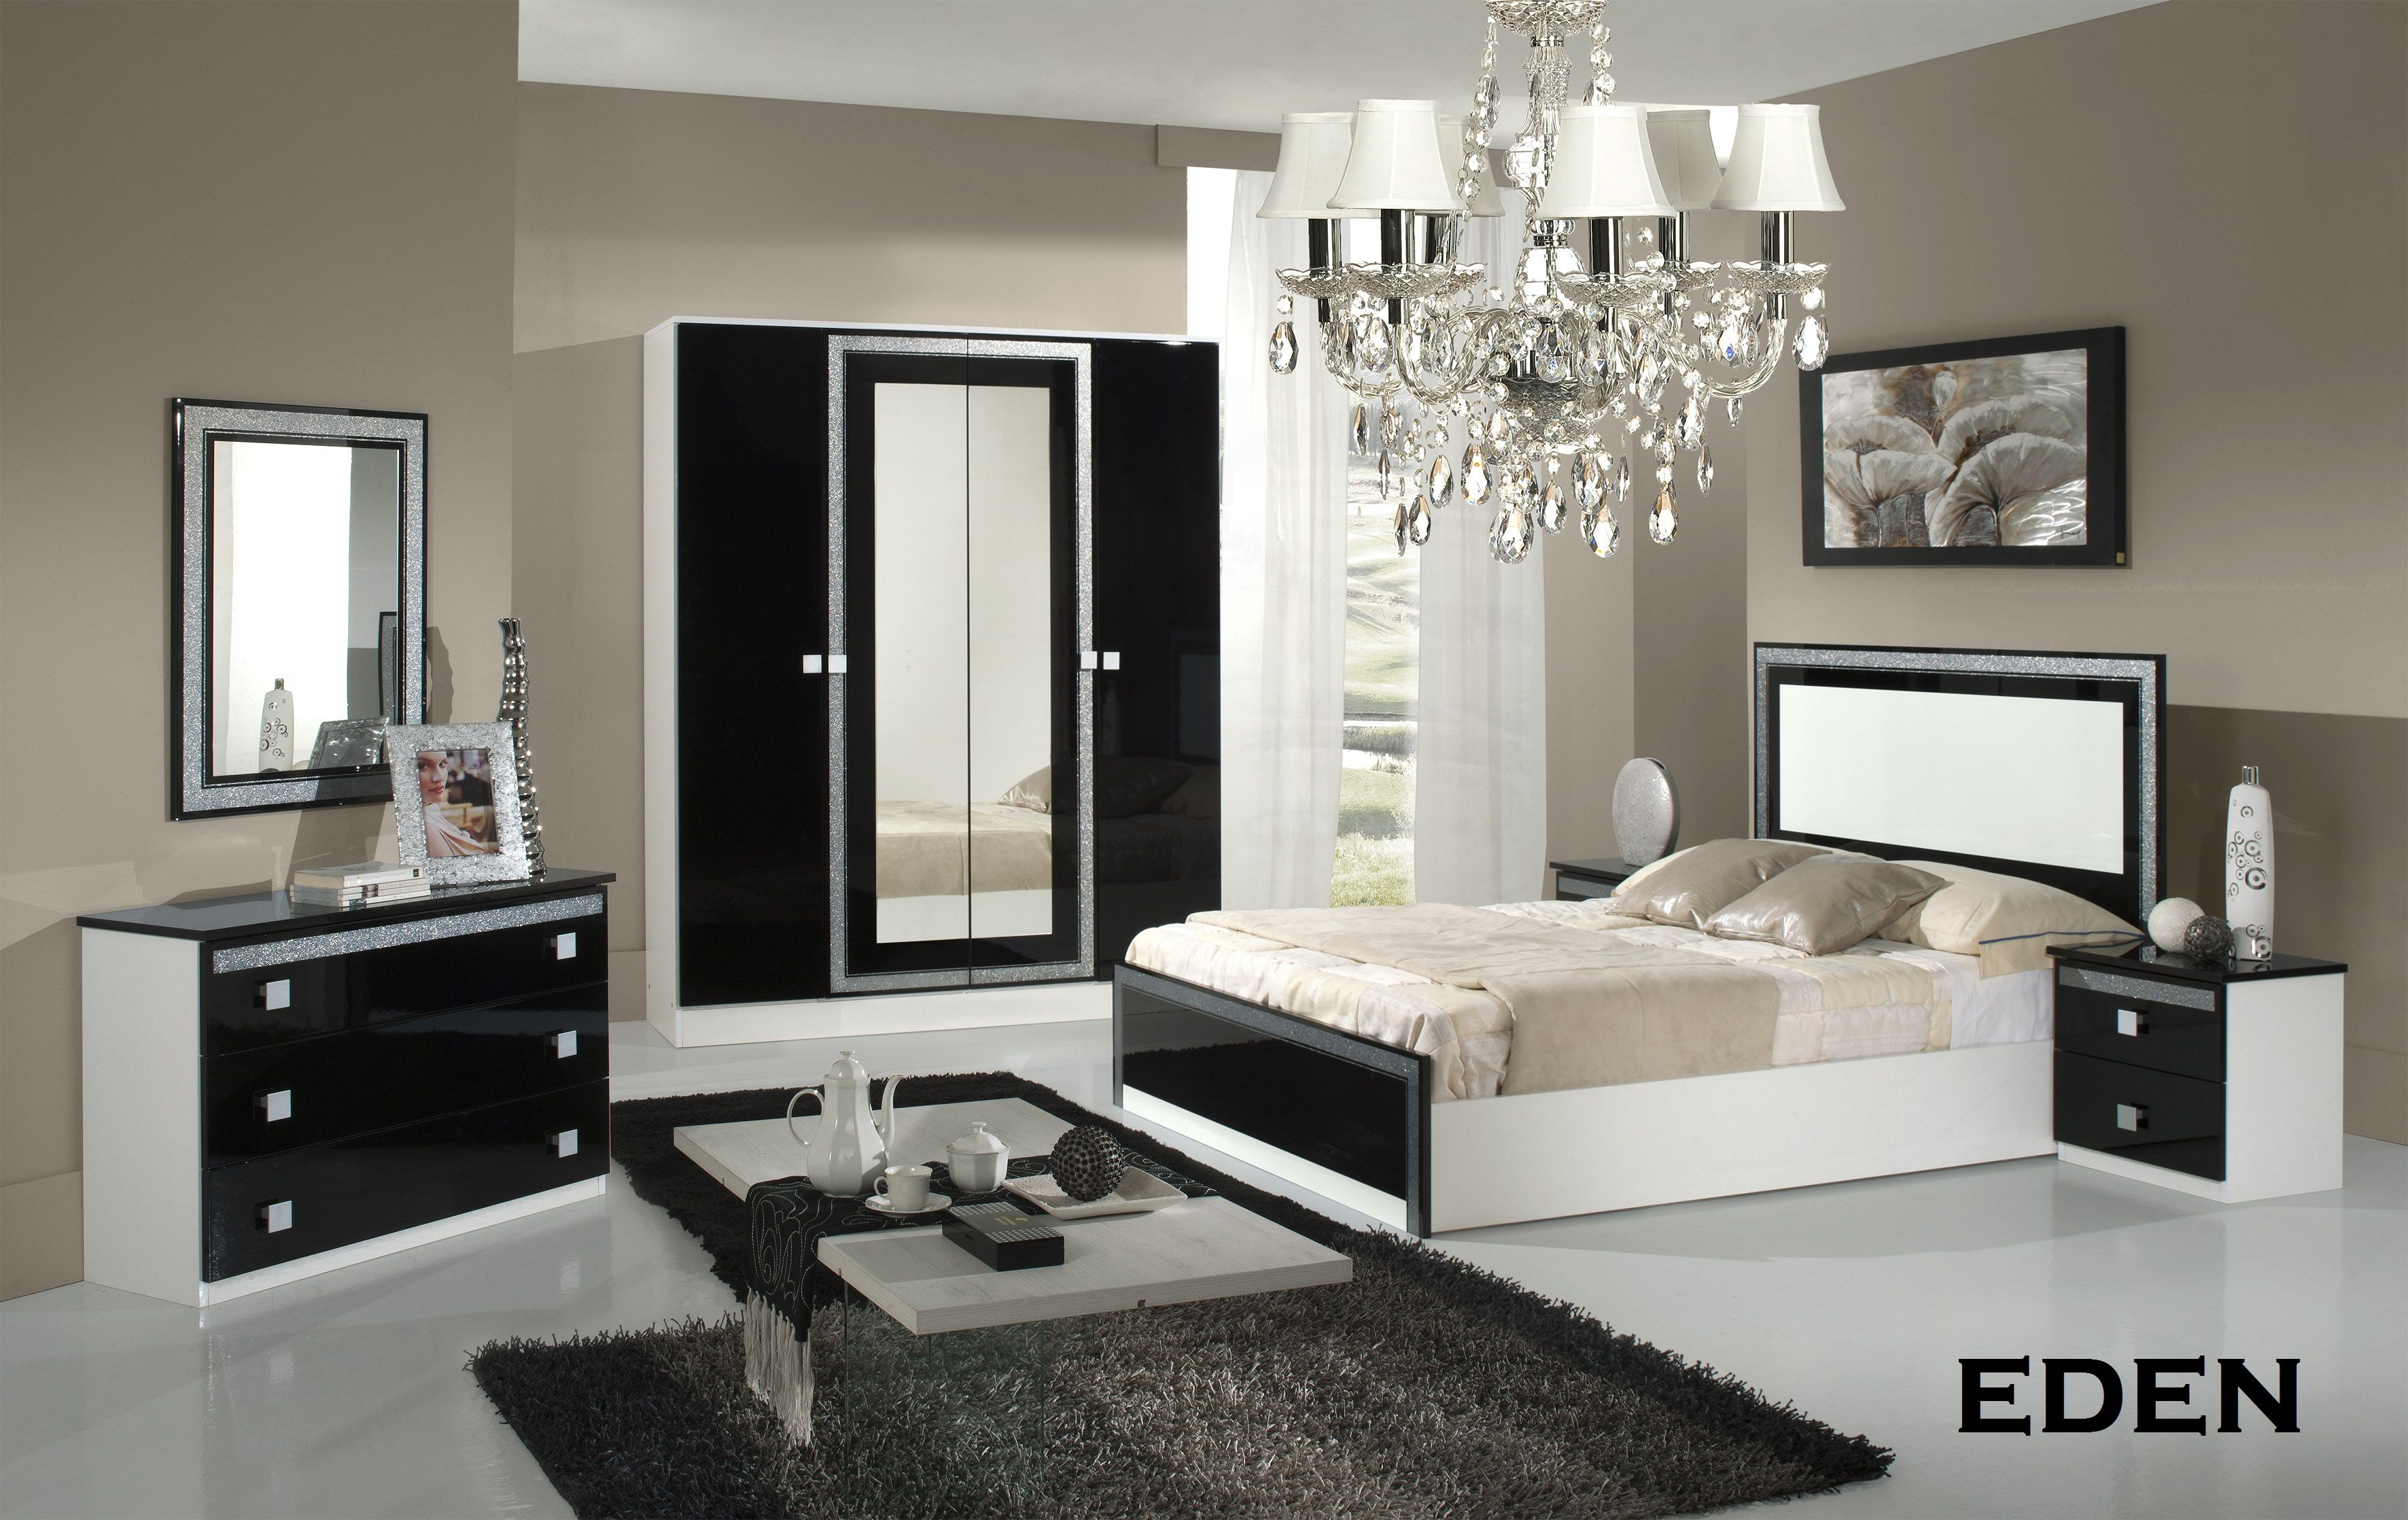 chambre complete eden comprend armoire 4 portes lit 140x190 2 chevets commode miroir. Black Bedroom Furniture Sets. Home Design Ideas